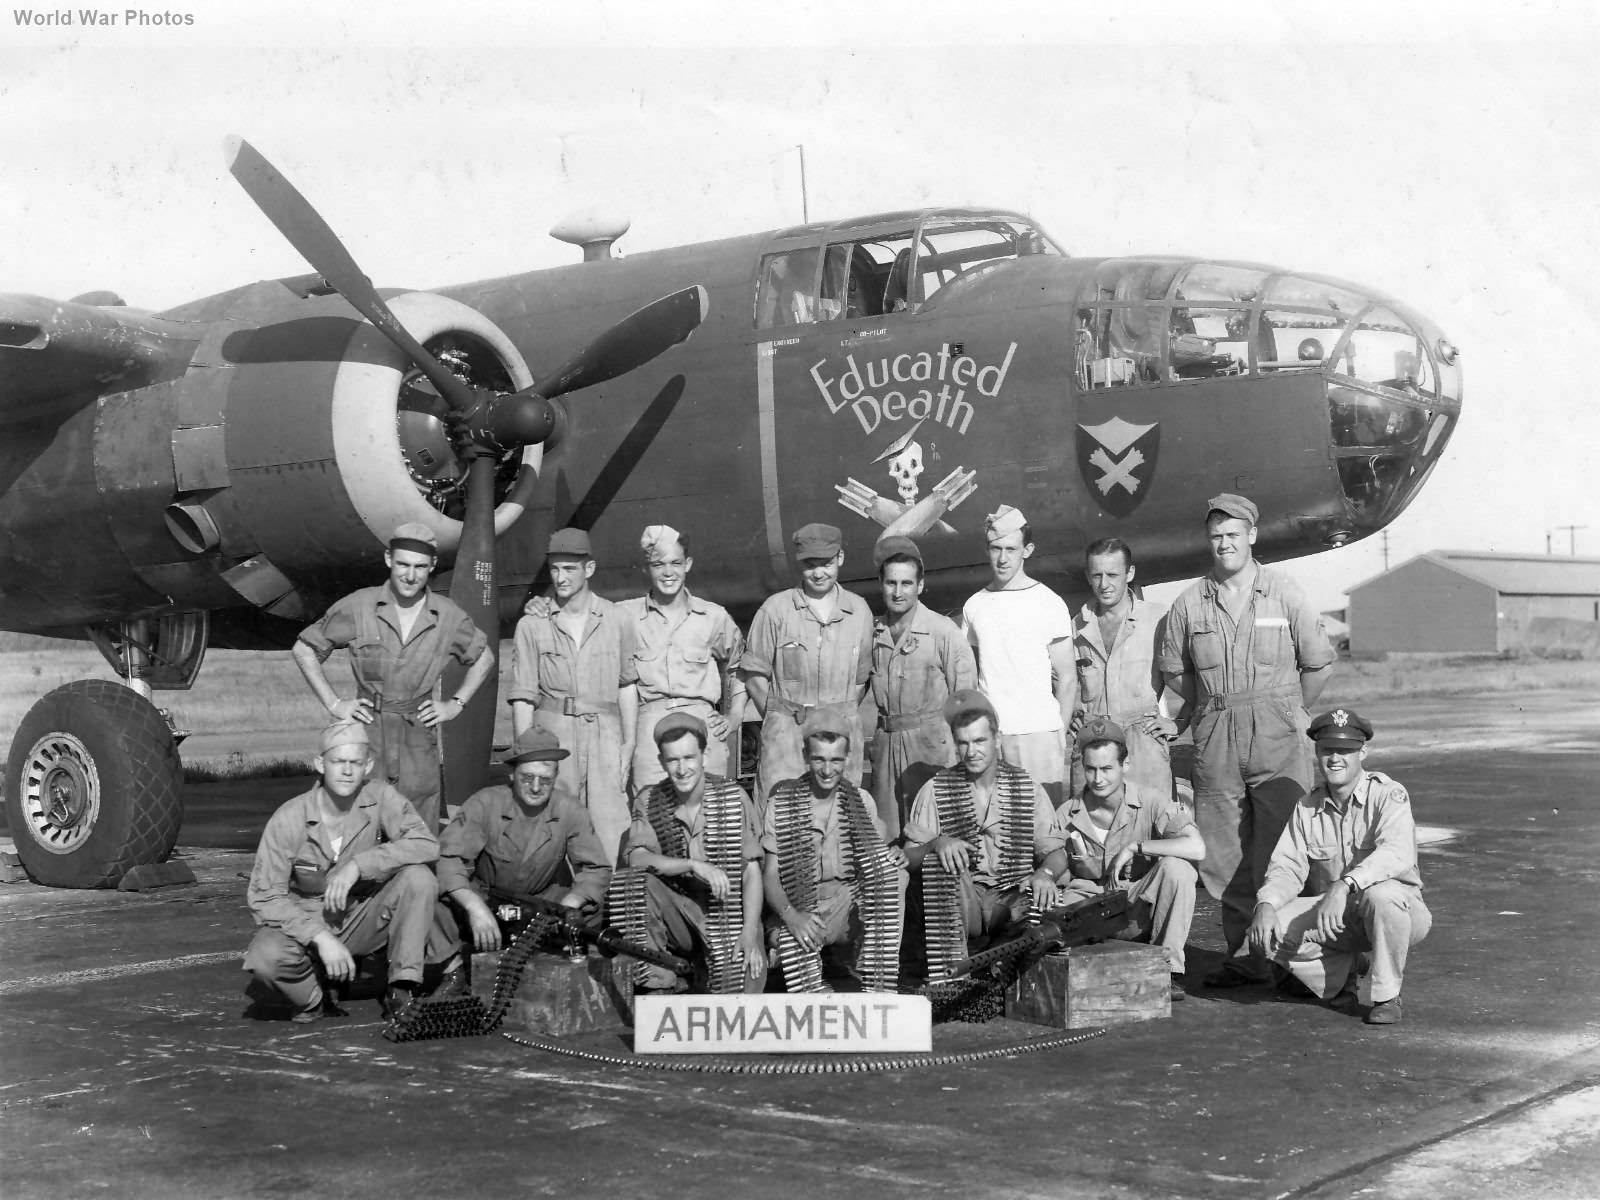 B-25 Educated Death 106th Recon